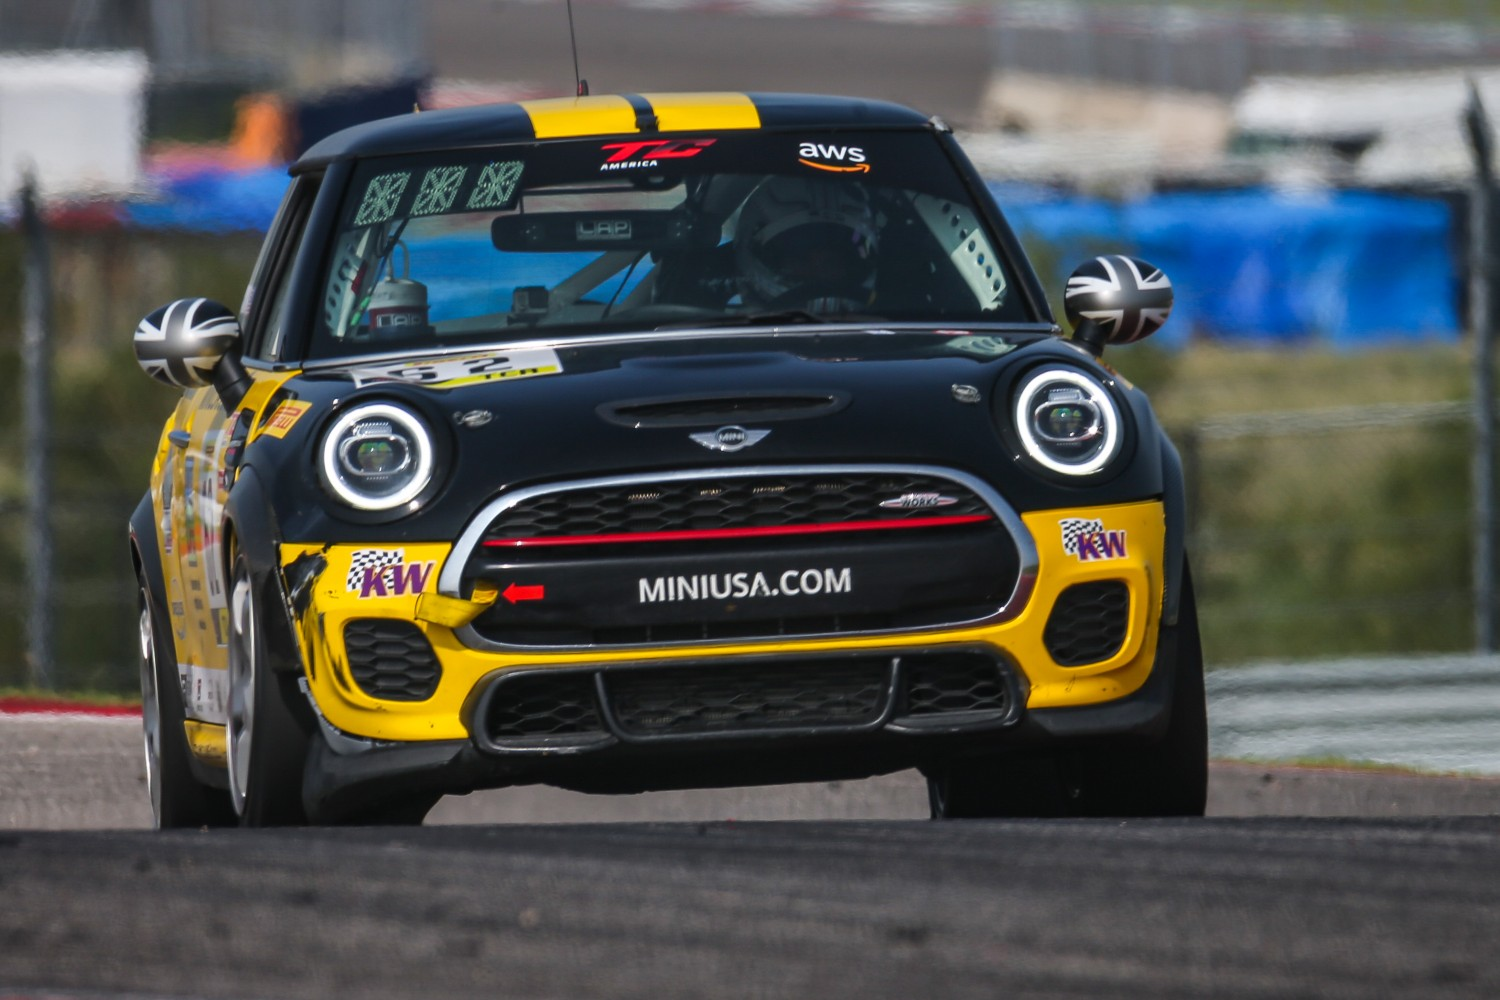 #62 MINI Cooper JCW of Clay Williams, MINI JCW Team, TCA, SRO America, Circuit of the Americas, Austin TX, September 2020.  | Sarah Weeks/SRO